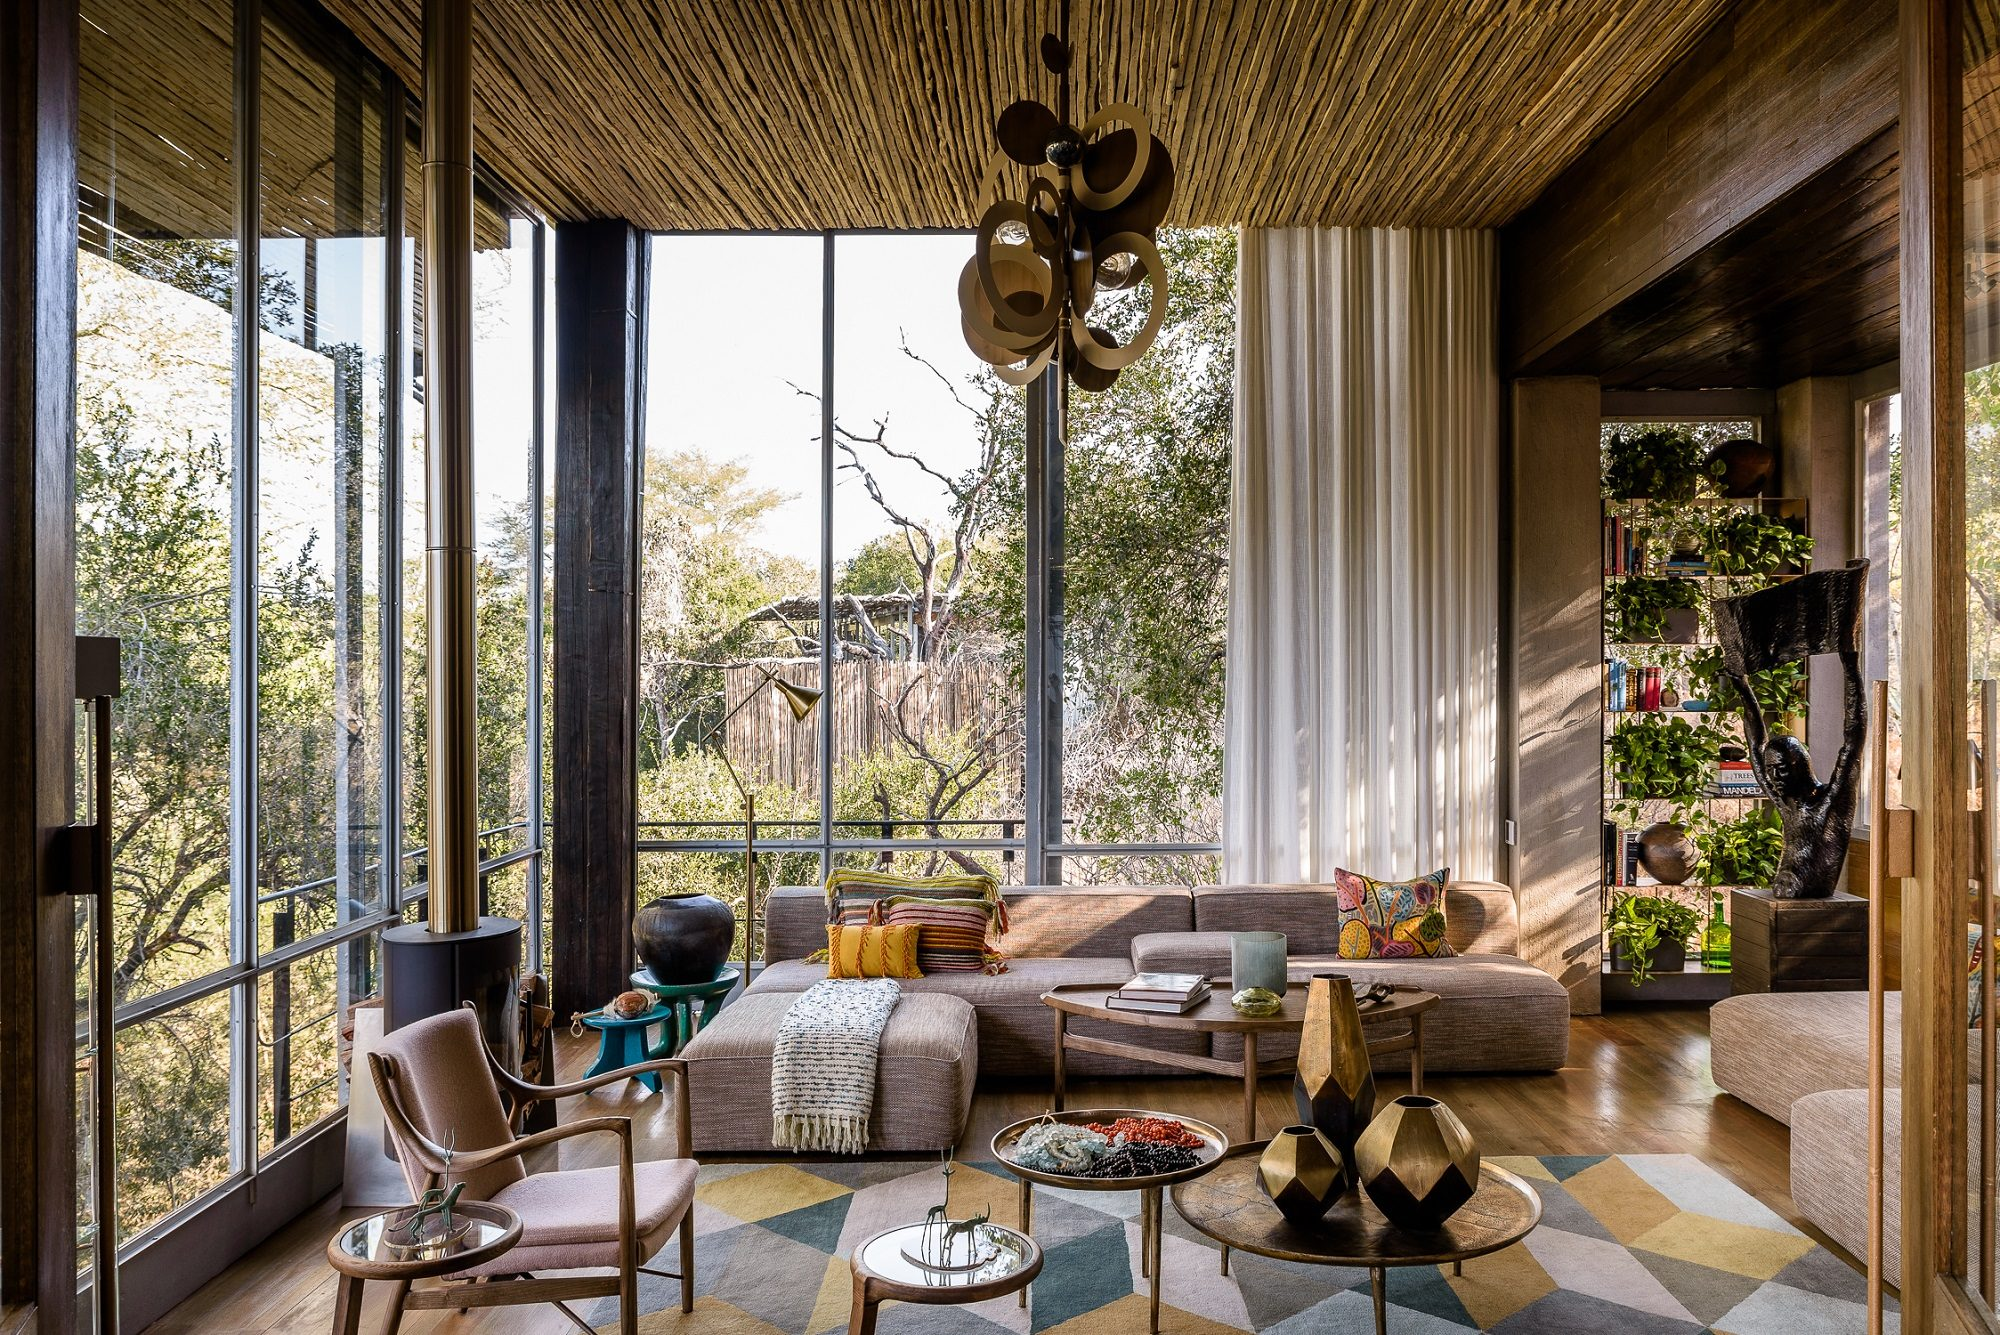 The newly refurbished singita sweni plays with color and texture defying traditional safari décor